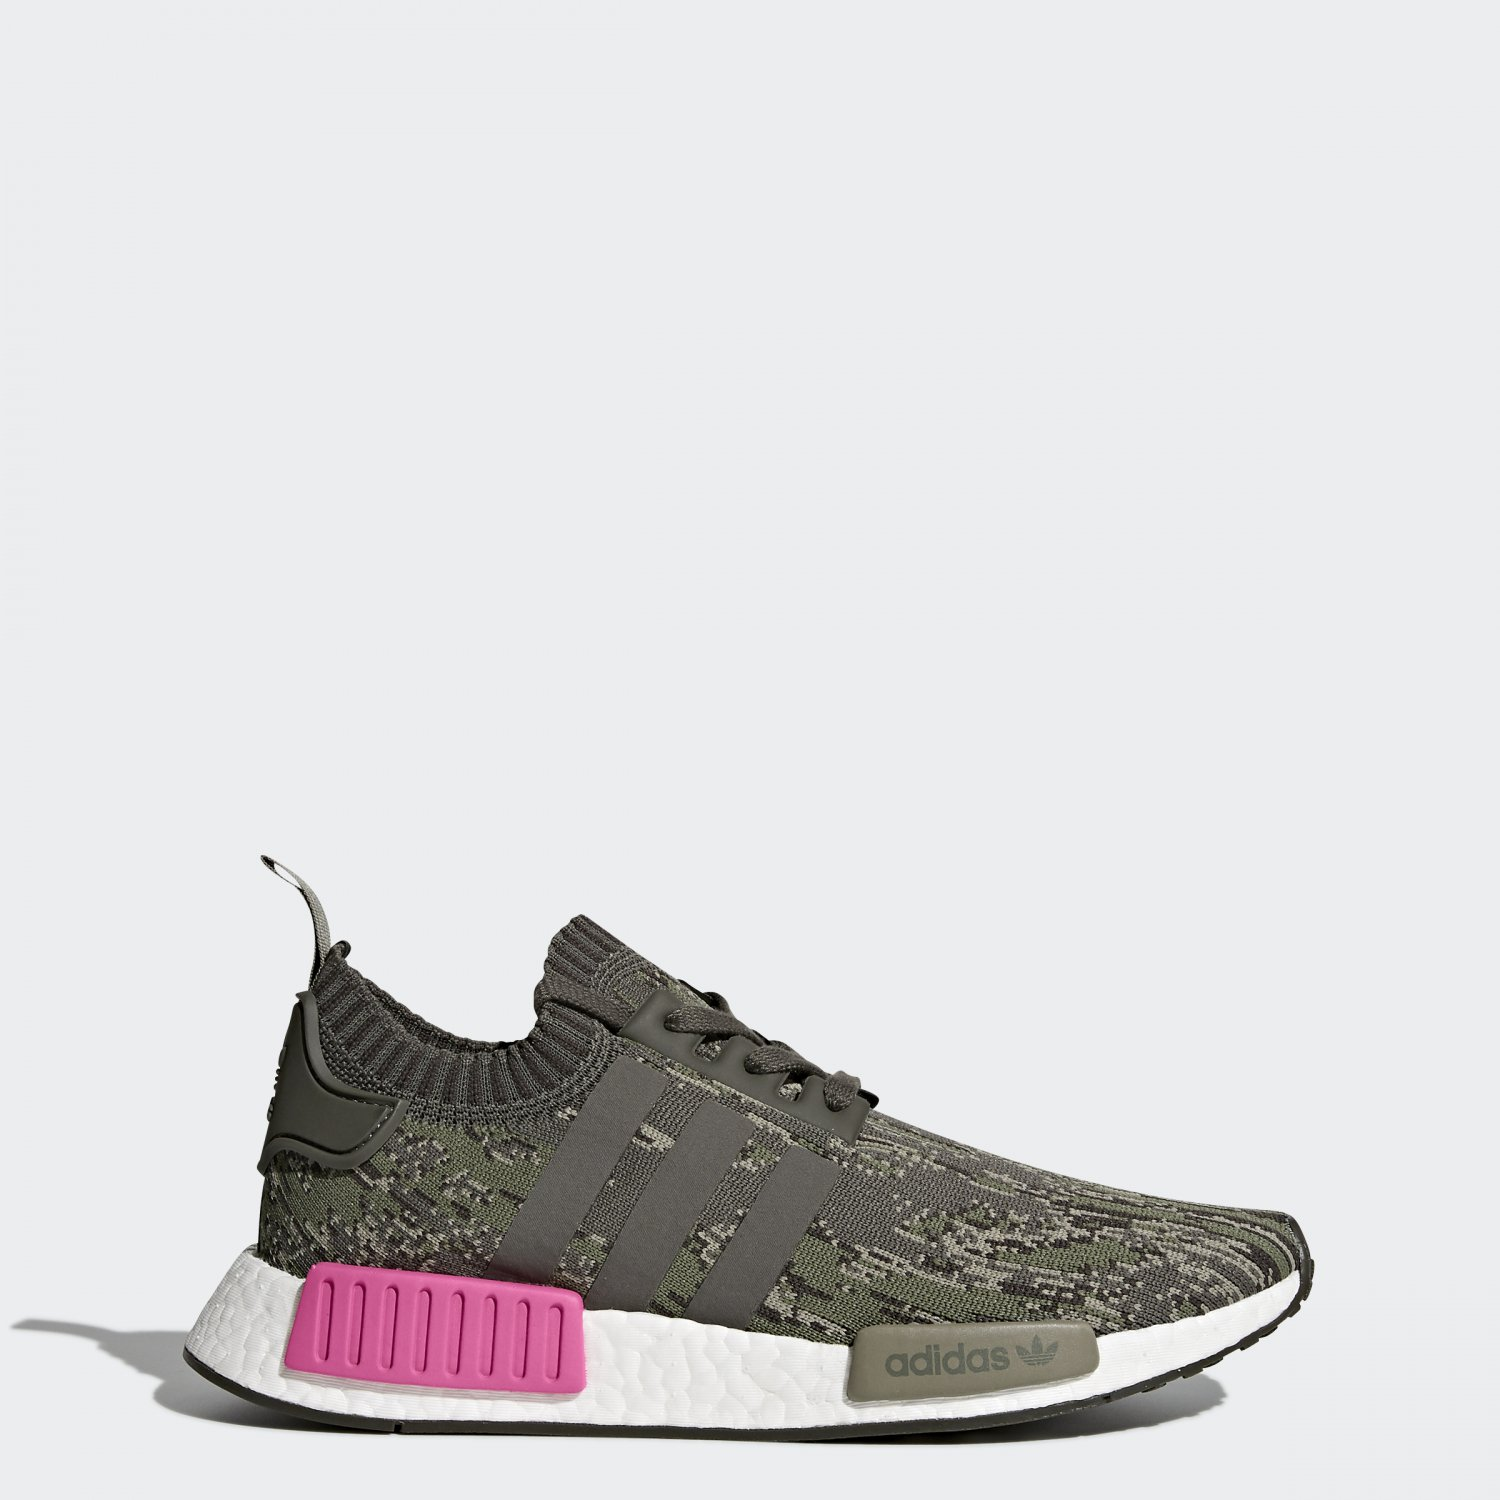 adidas-nmd-r1-pk-bz0222-release-20171103